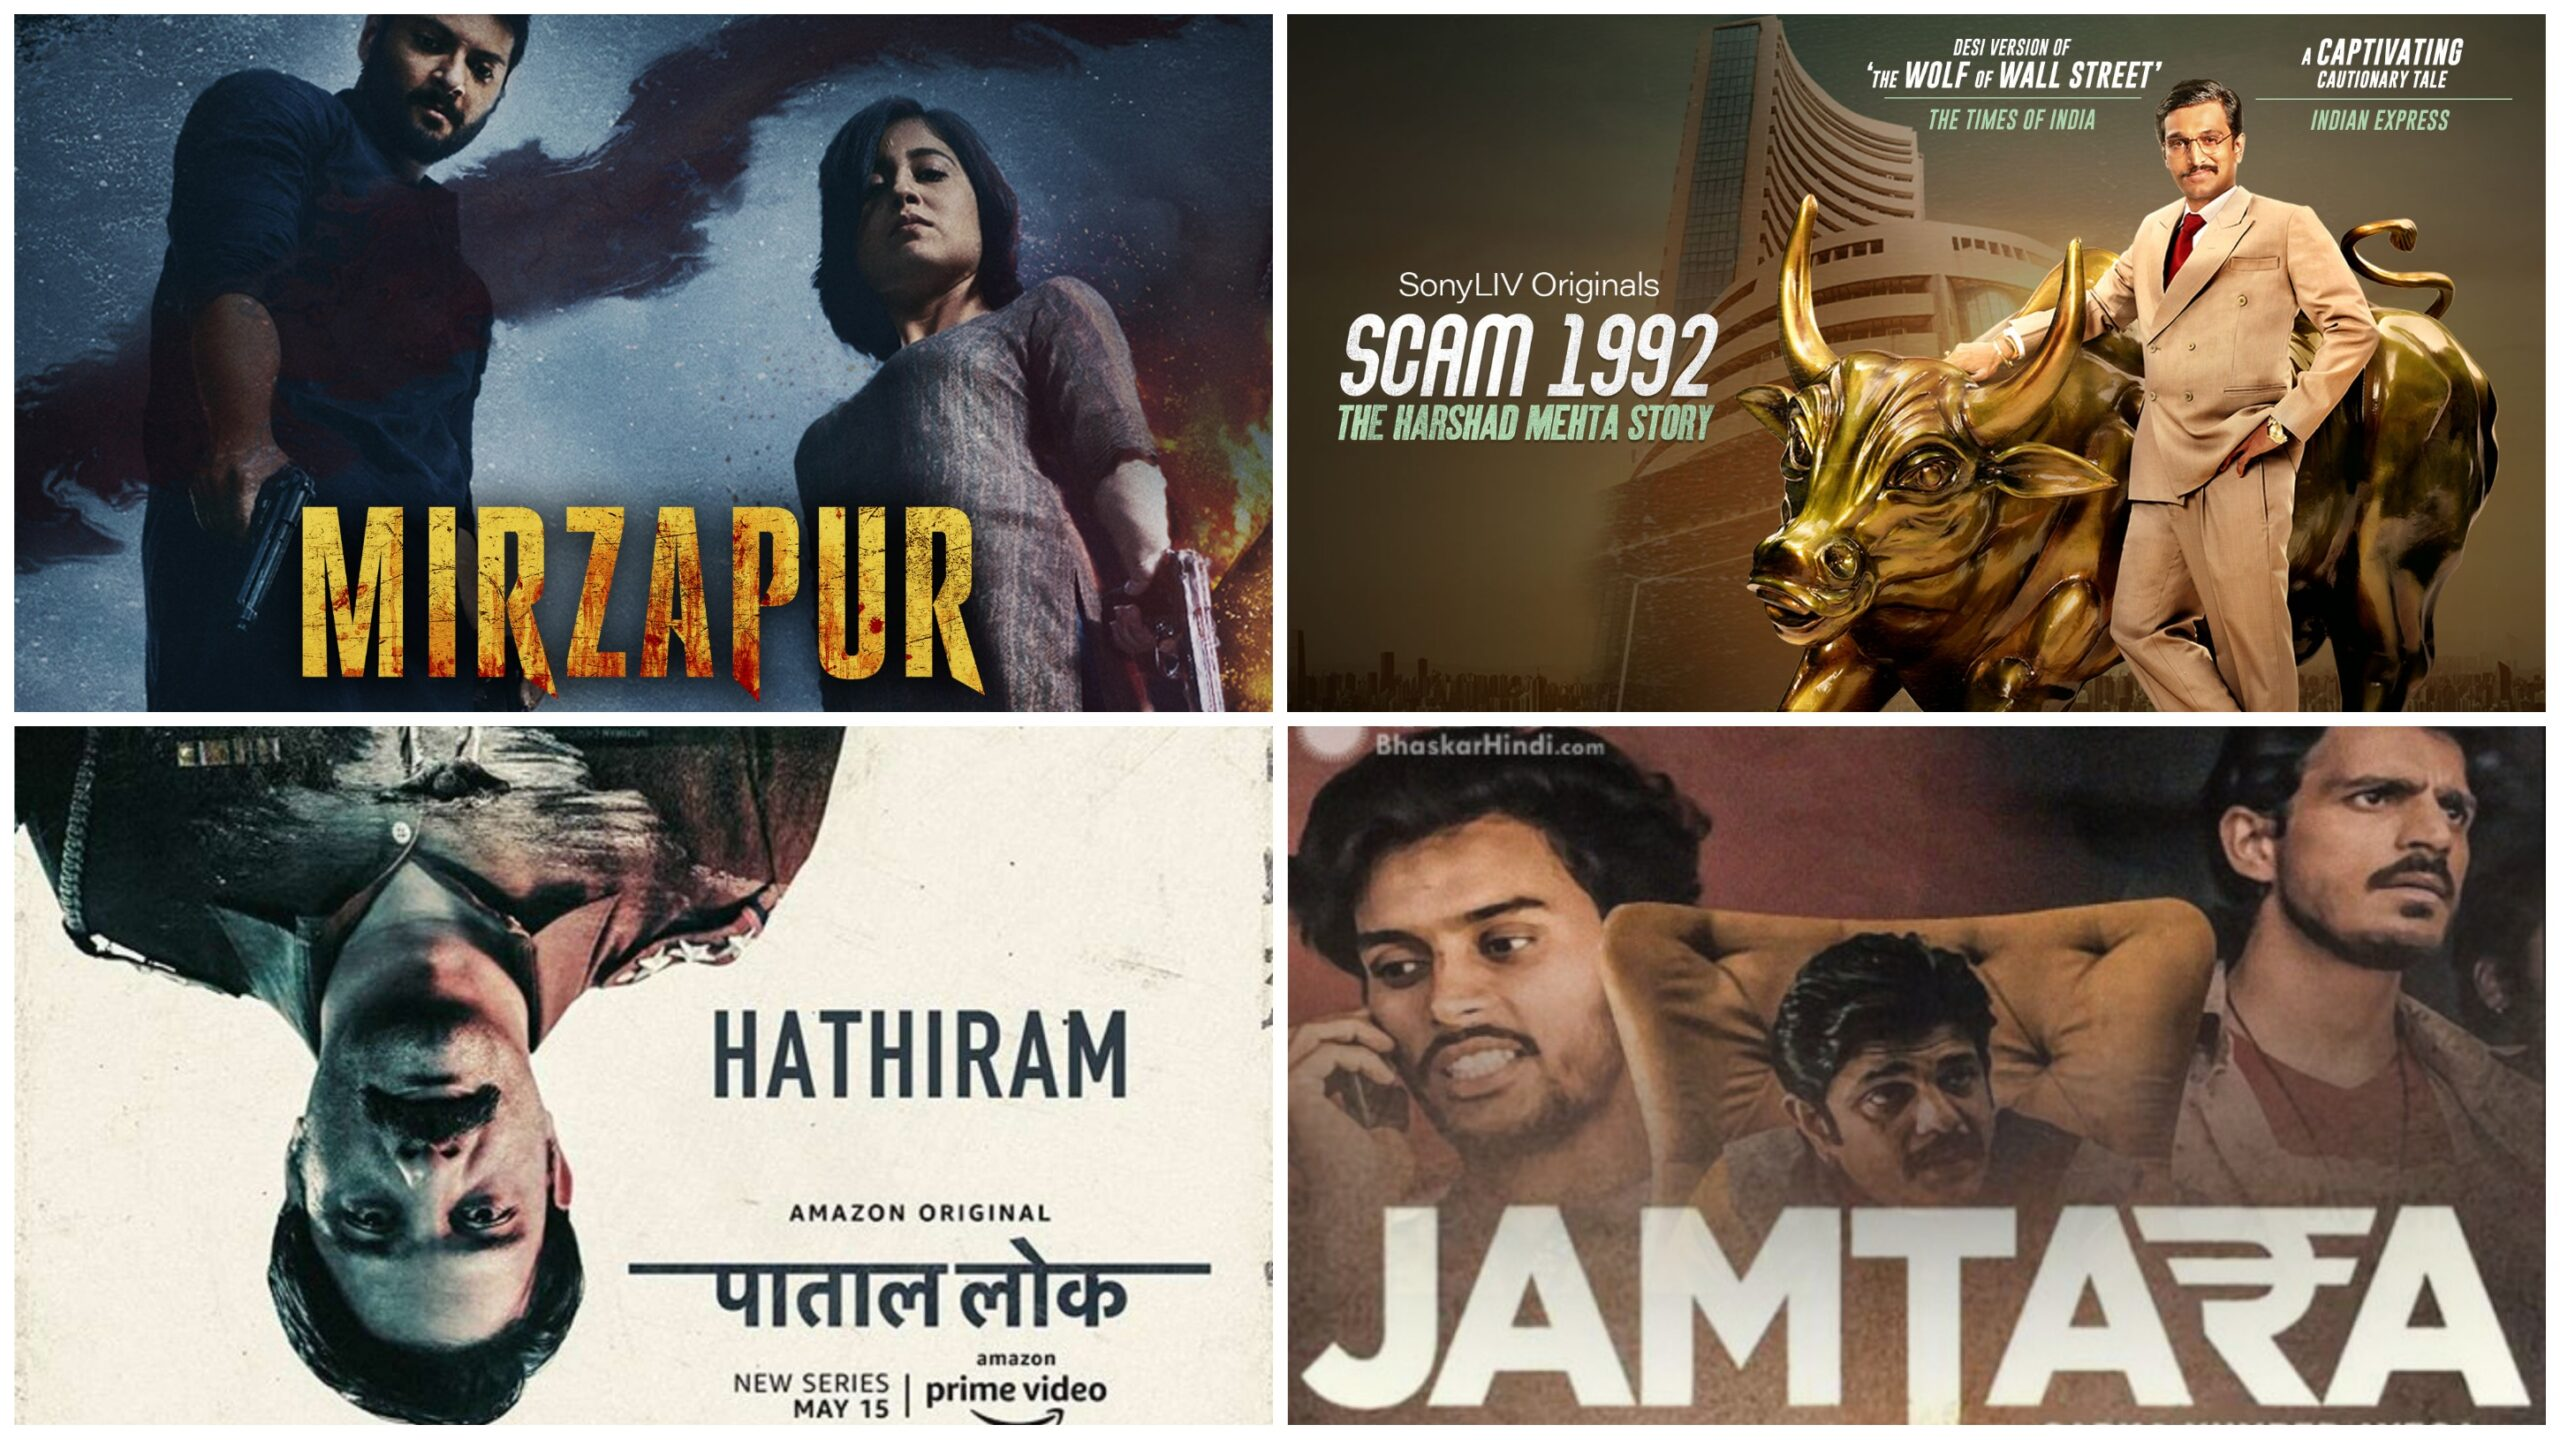 Web series that rose to unscaled heights in 2020